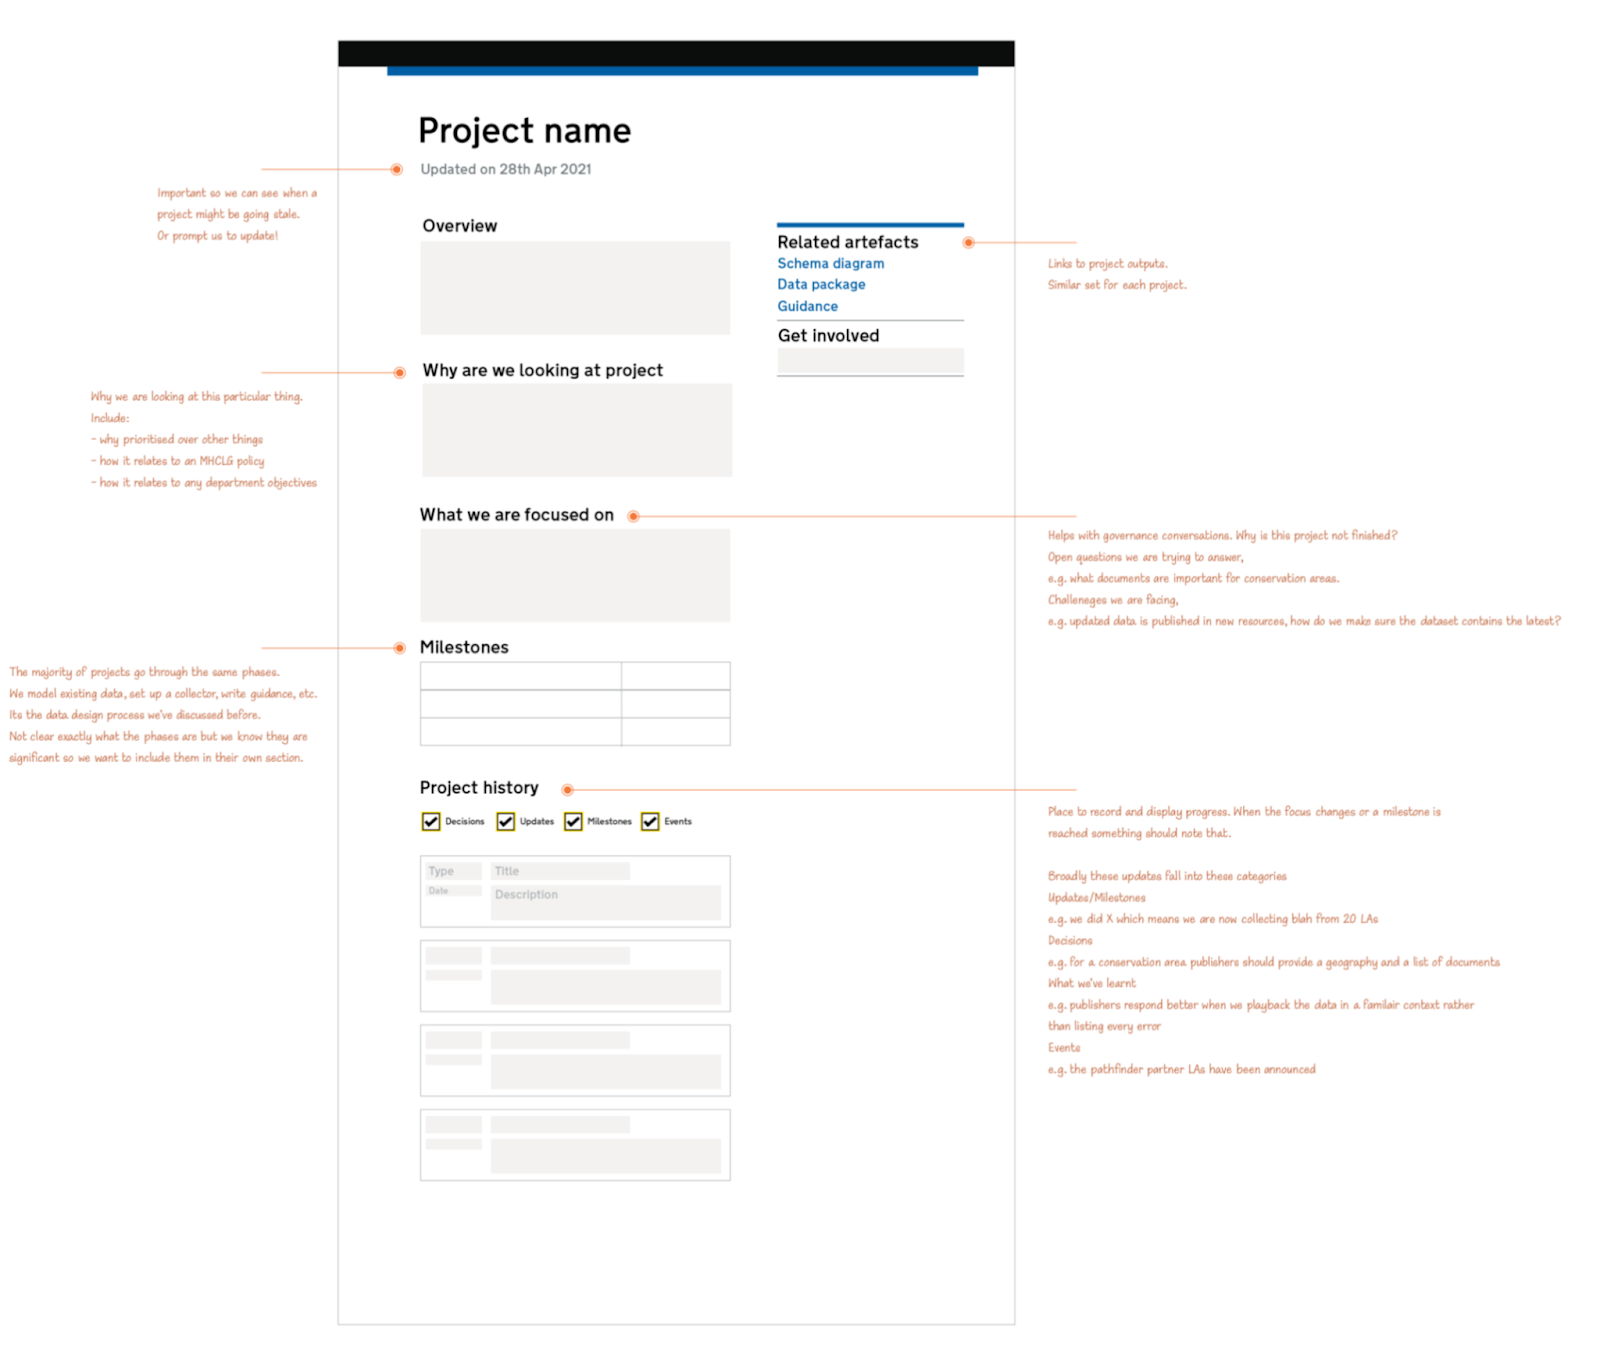 Image showing a Digital Land project page